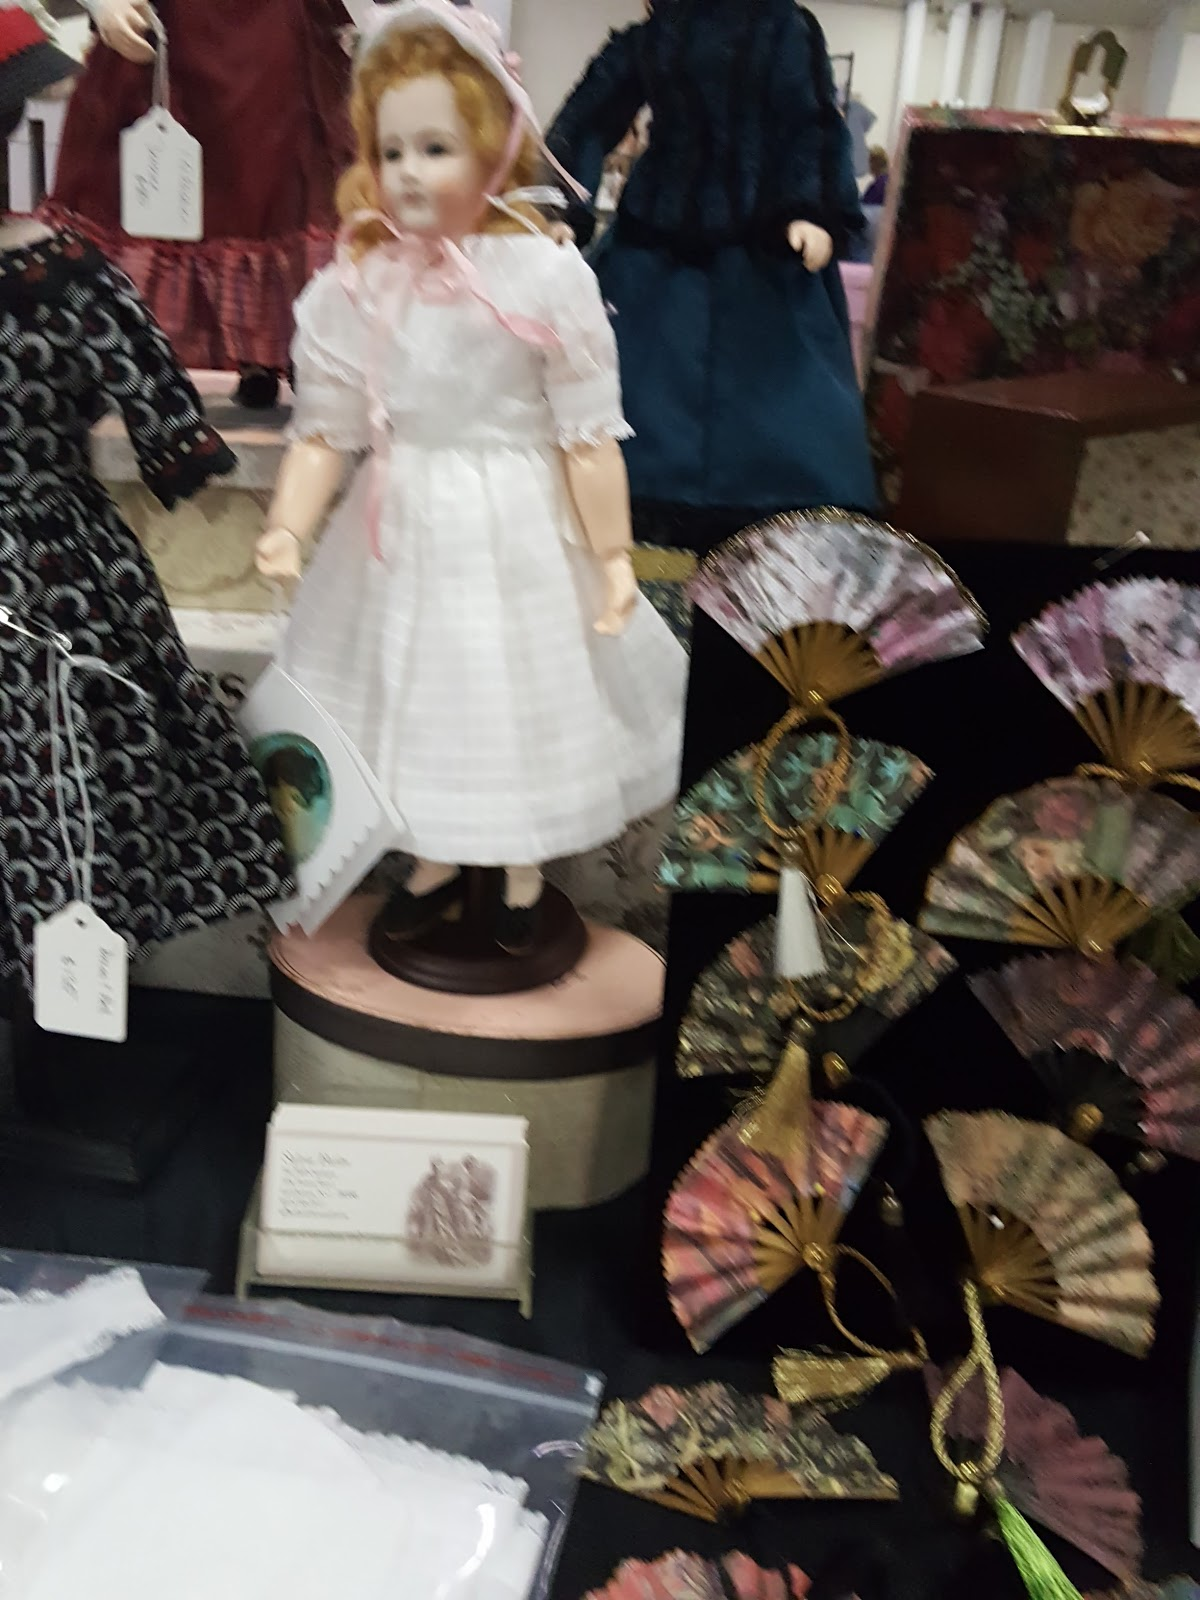 The One Sixth Scale Dollhouse: FS: Selling some of my